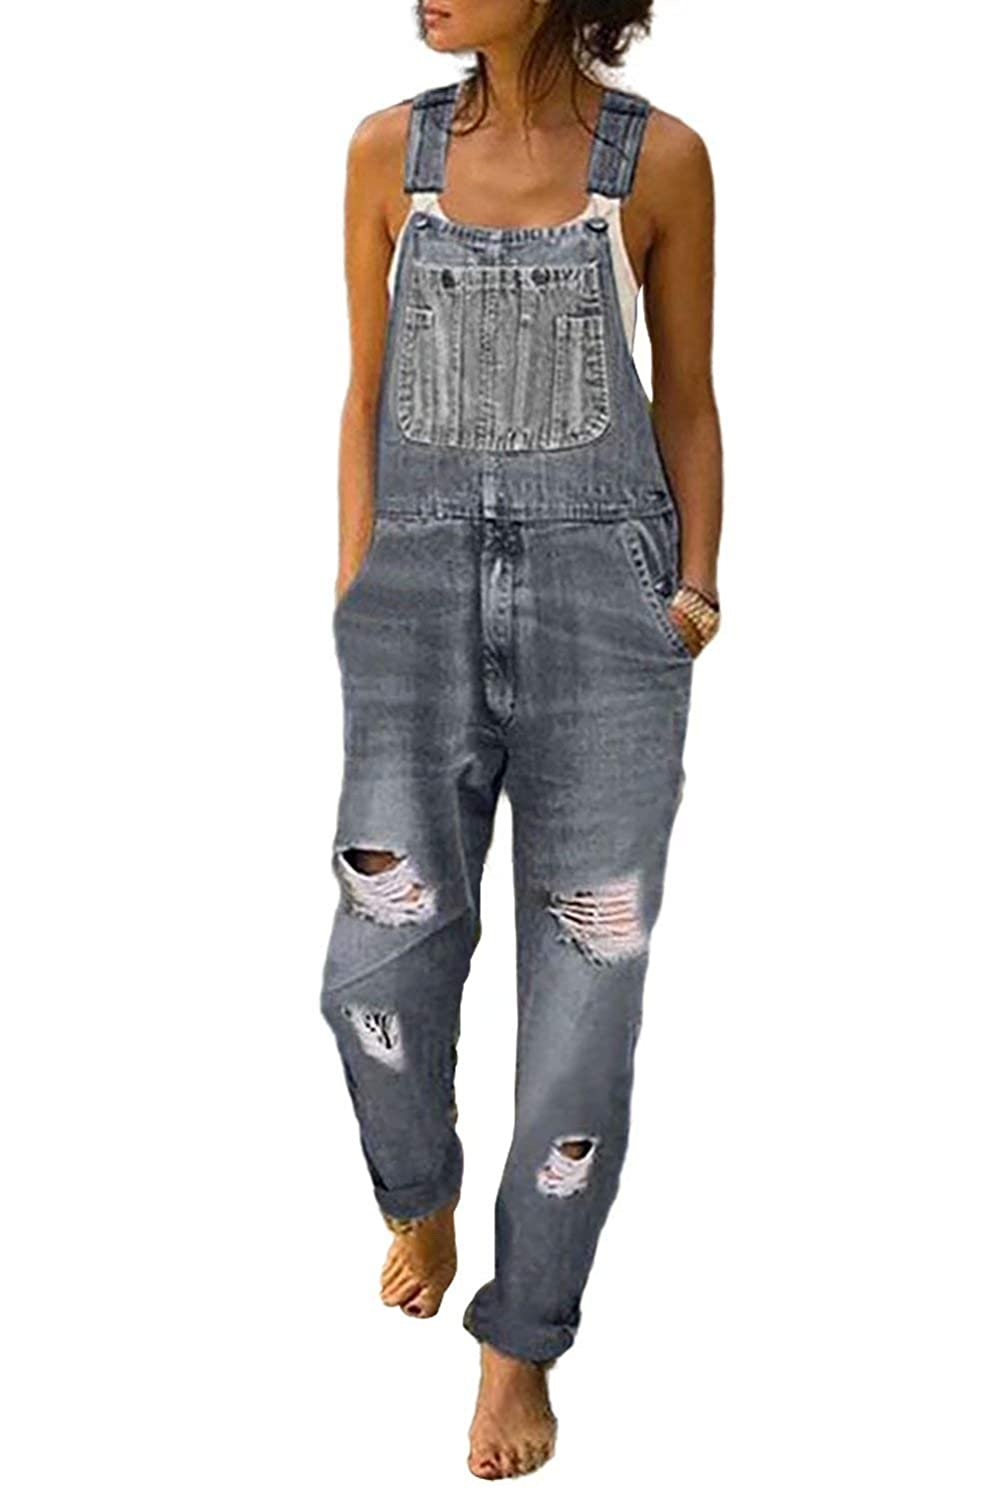 Newest Womens Casual Stretch Jumpsuit Washed Ripped Hole Denim Overalls Baggy Denim Bib Overalls